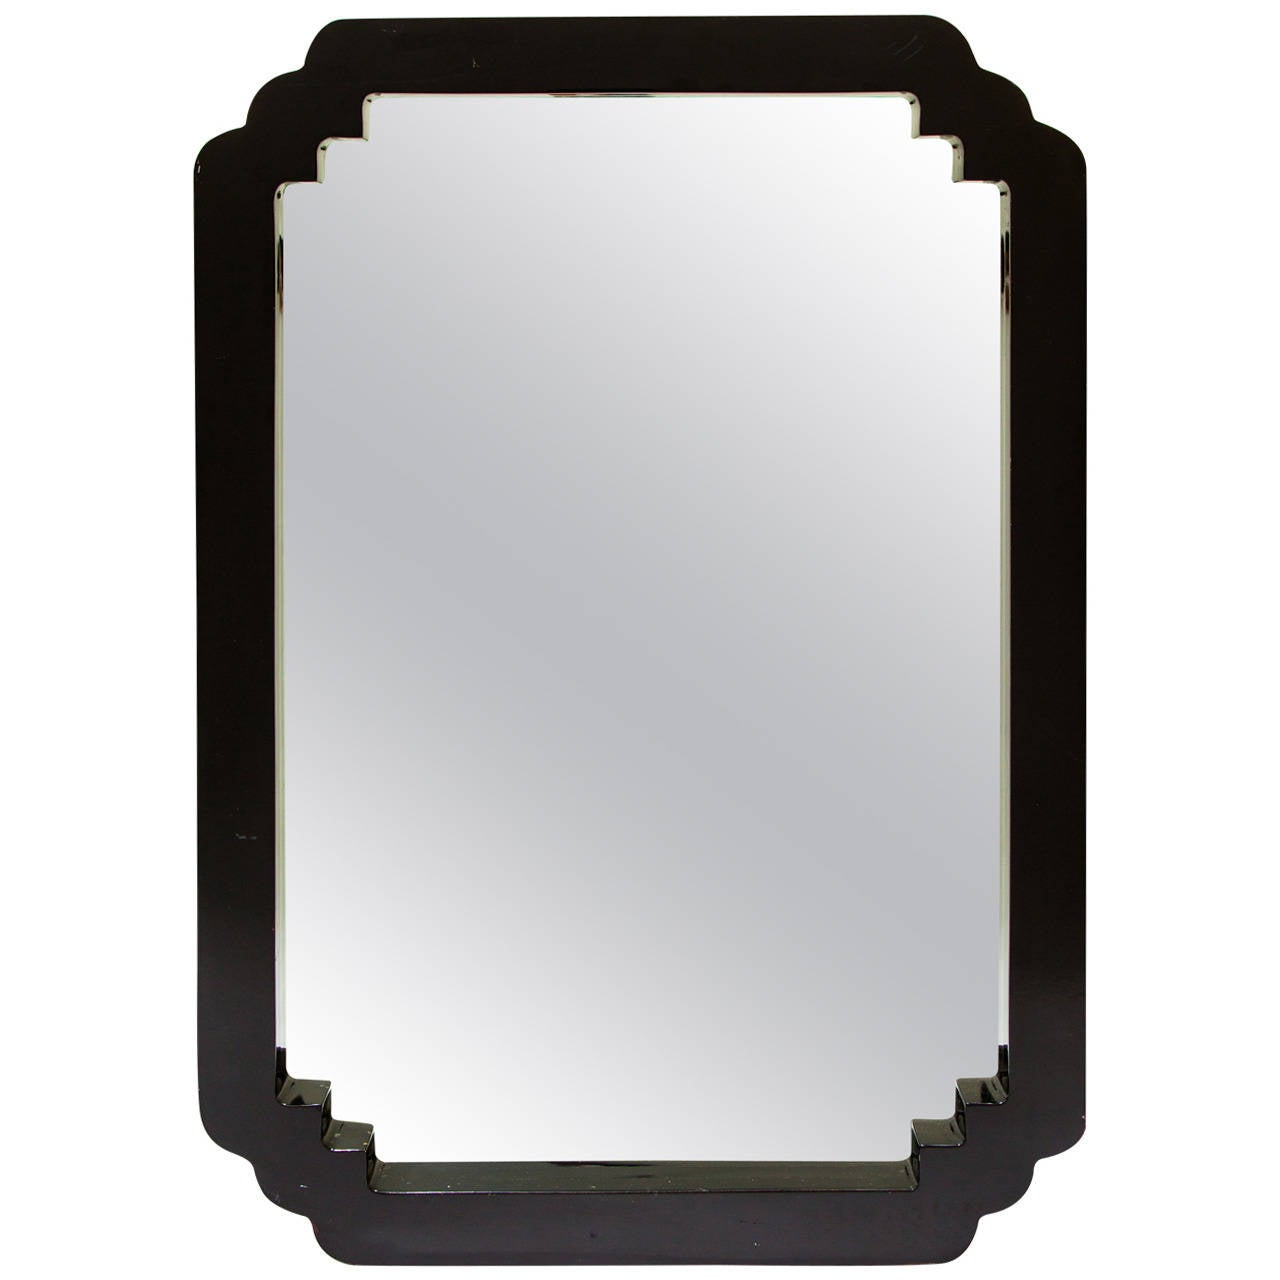 Asian Style Wall Mirrors Asian Style Lacquered Wood Wall Mirror At 1stdibs